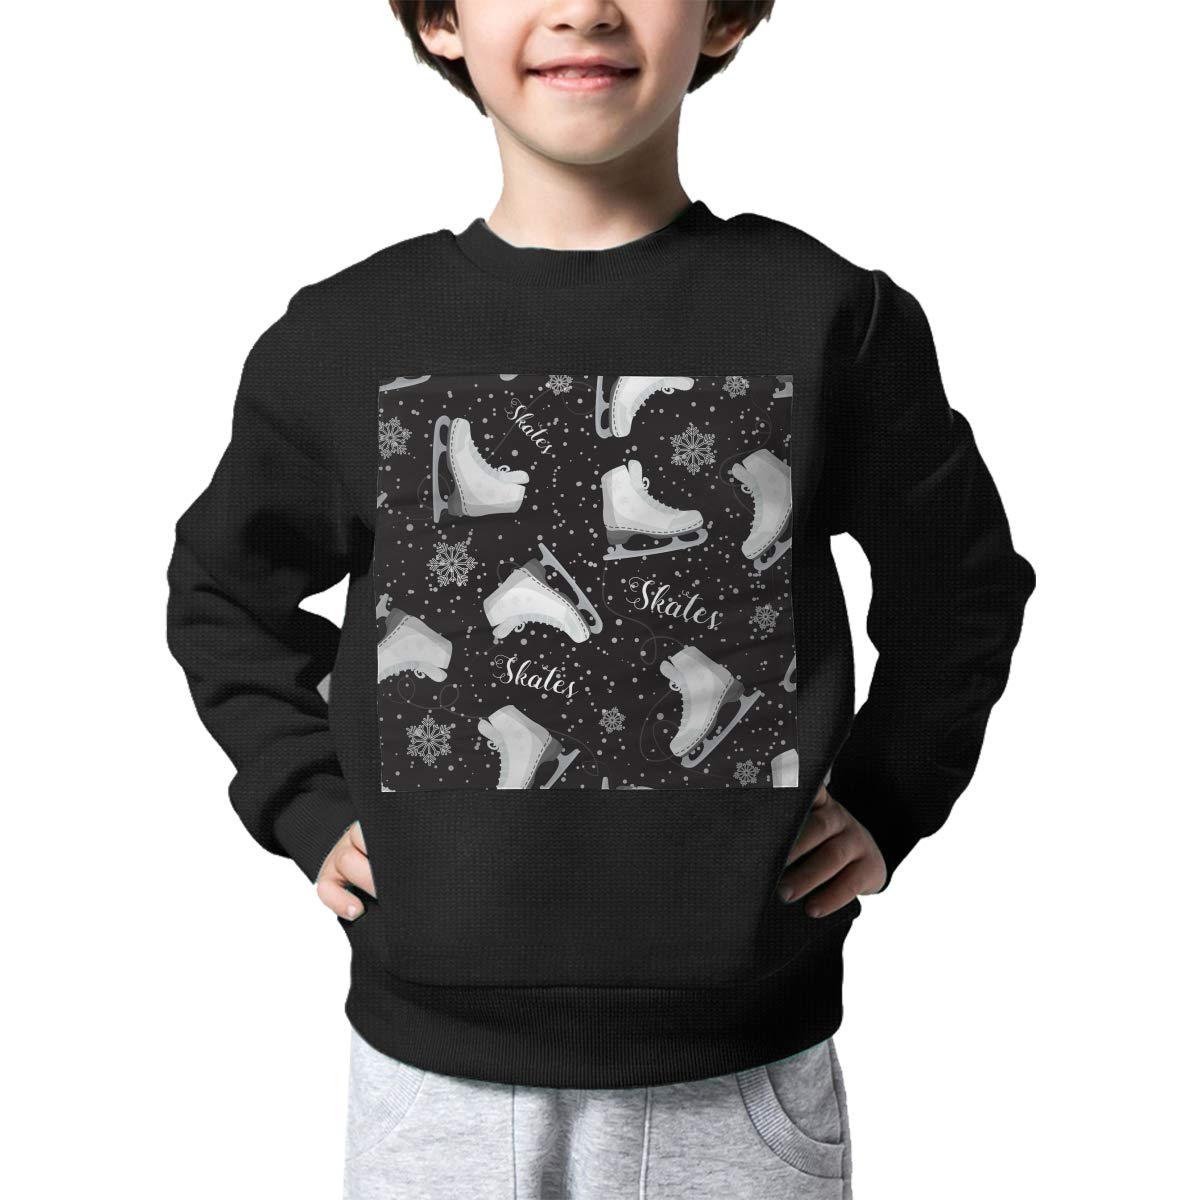 Skates On The Ice Pattern Printed Baby Girls Childrens Crew Neck Sweater Long Sleeve Warm Knitted Sweatshirt